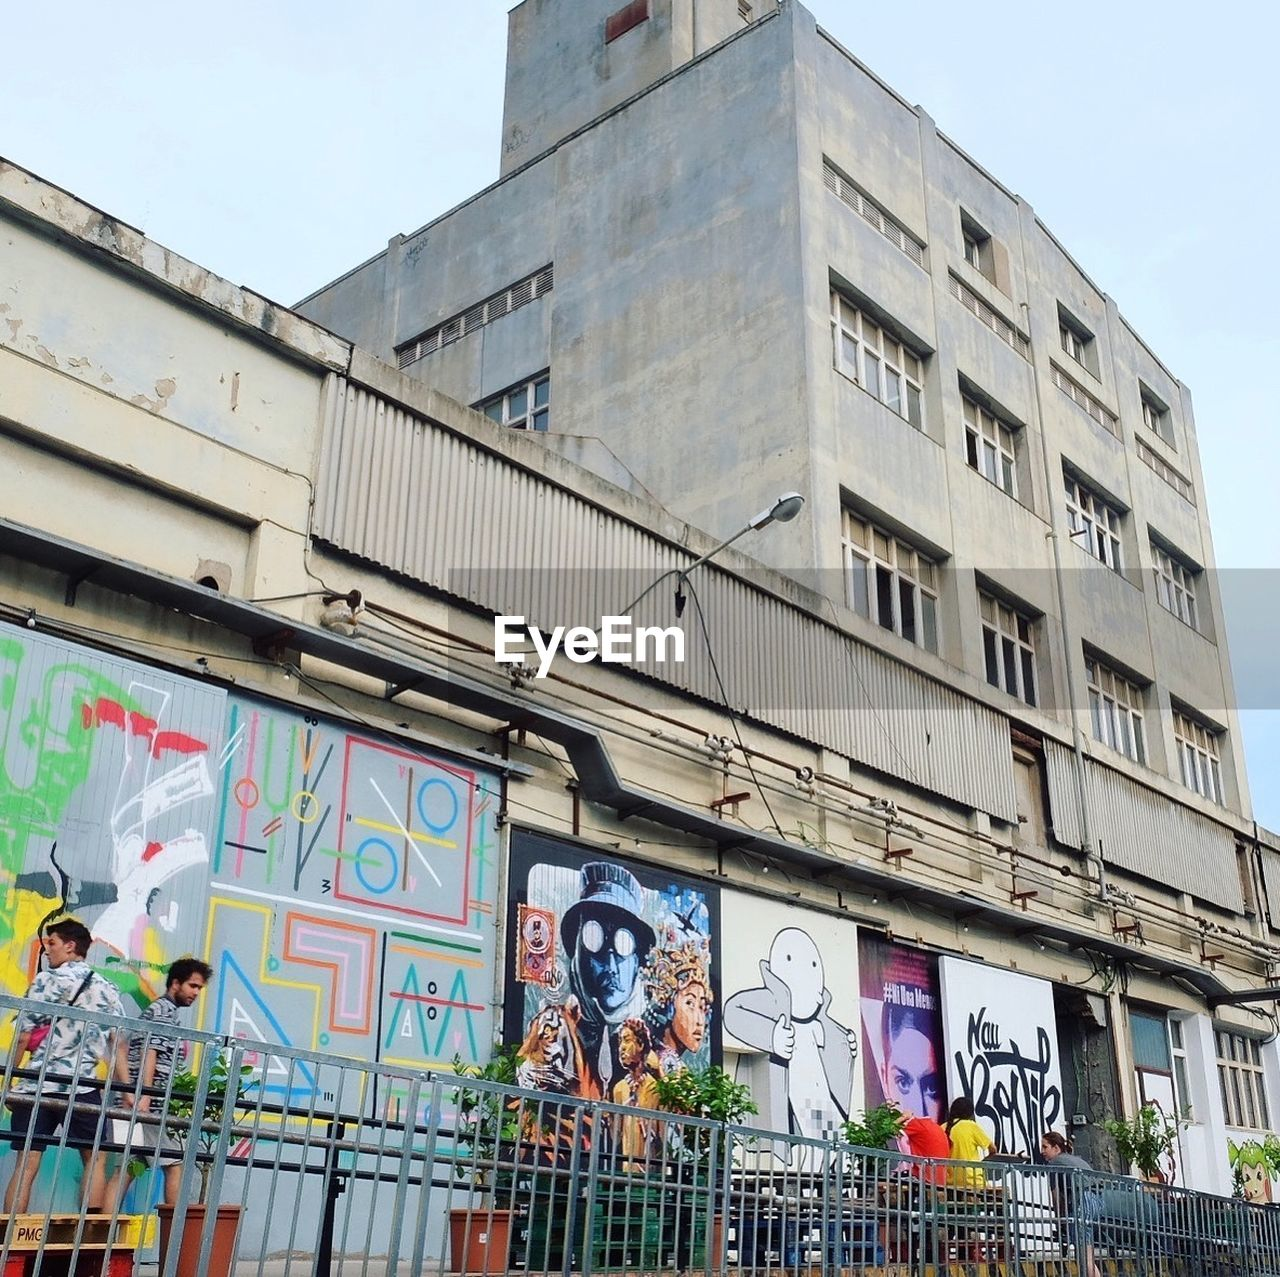 architecture, text, building exterior, built structure, graffiti, human representation, day, outdoors, low angle view, no people, city, sky